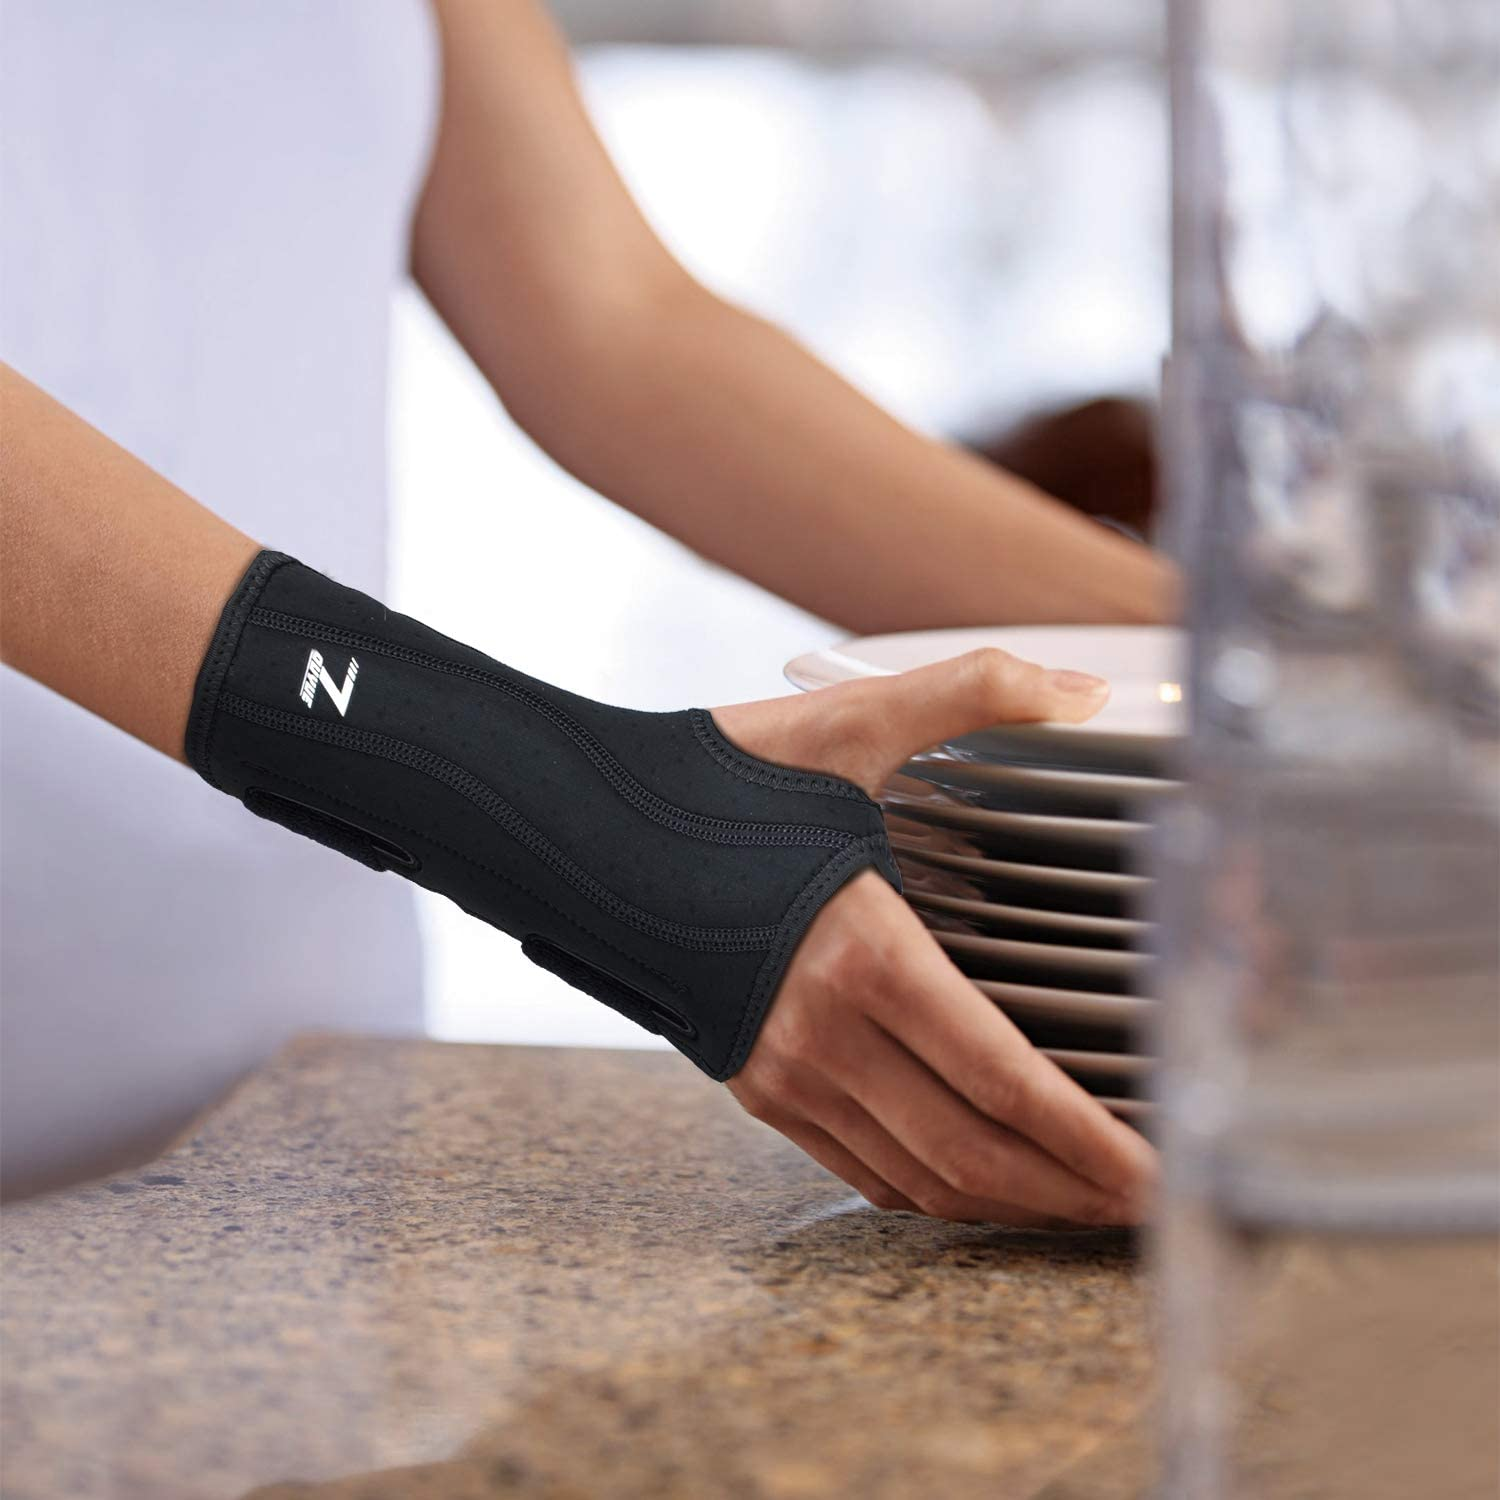 Carpal Tunnel Wrist Brace, Night Sleep Wrist Support, Removable Metal Wrist Splint for Men, Women, Right Hand, Tendinitis, Bowling, Sports Injuries Pain Relief -Right